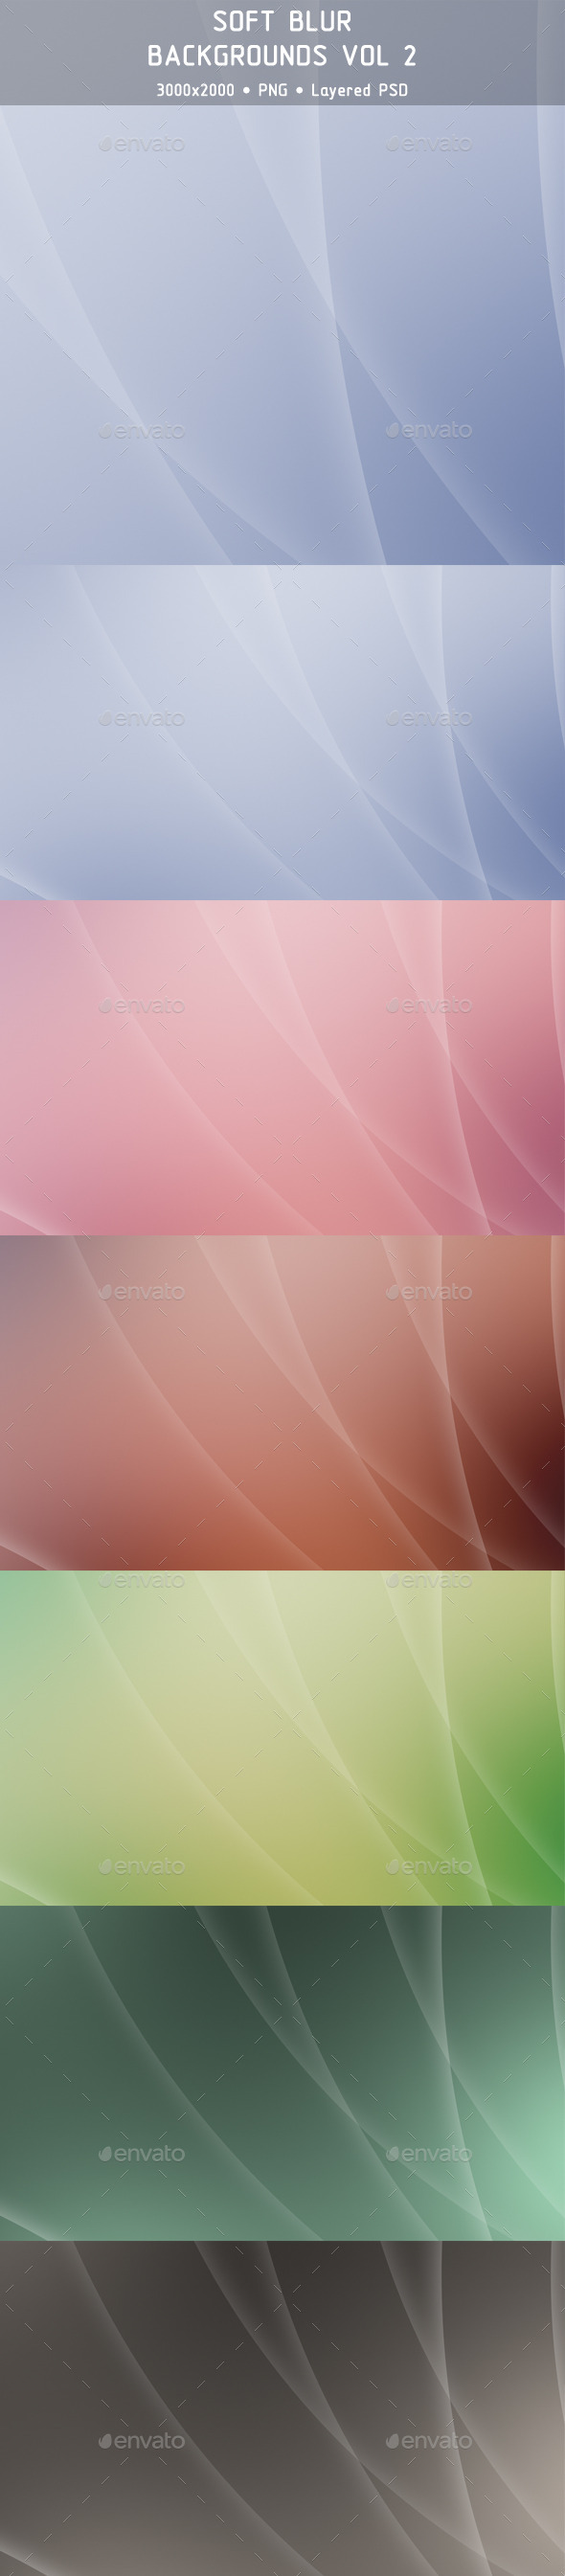 Soft Blur Backgrounds Vol 2 - Backgrounds Graphics